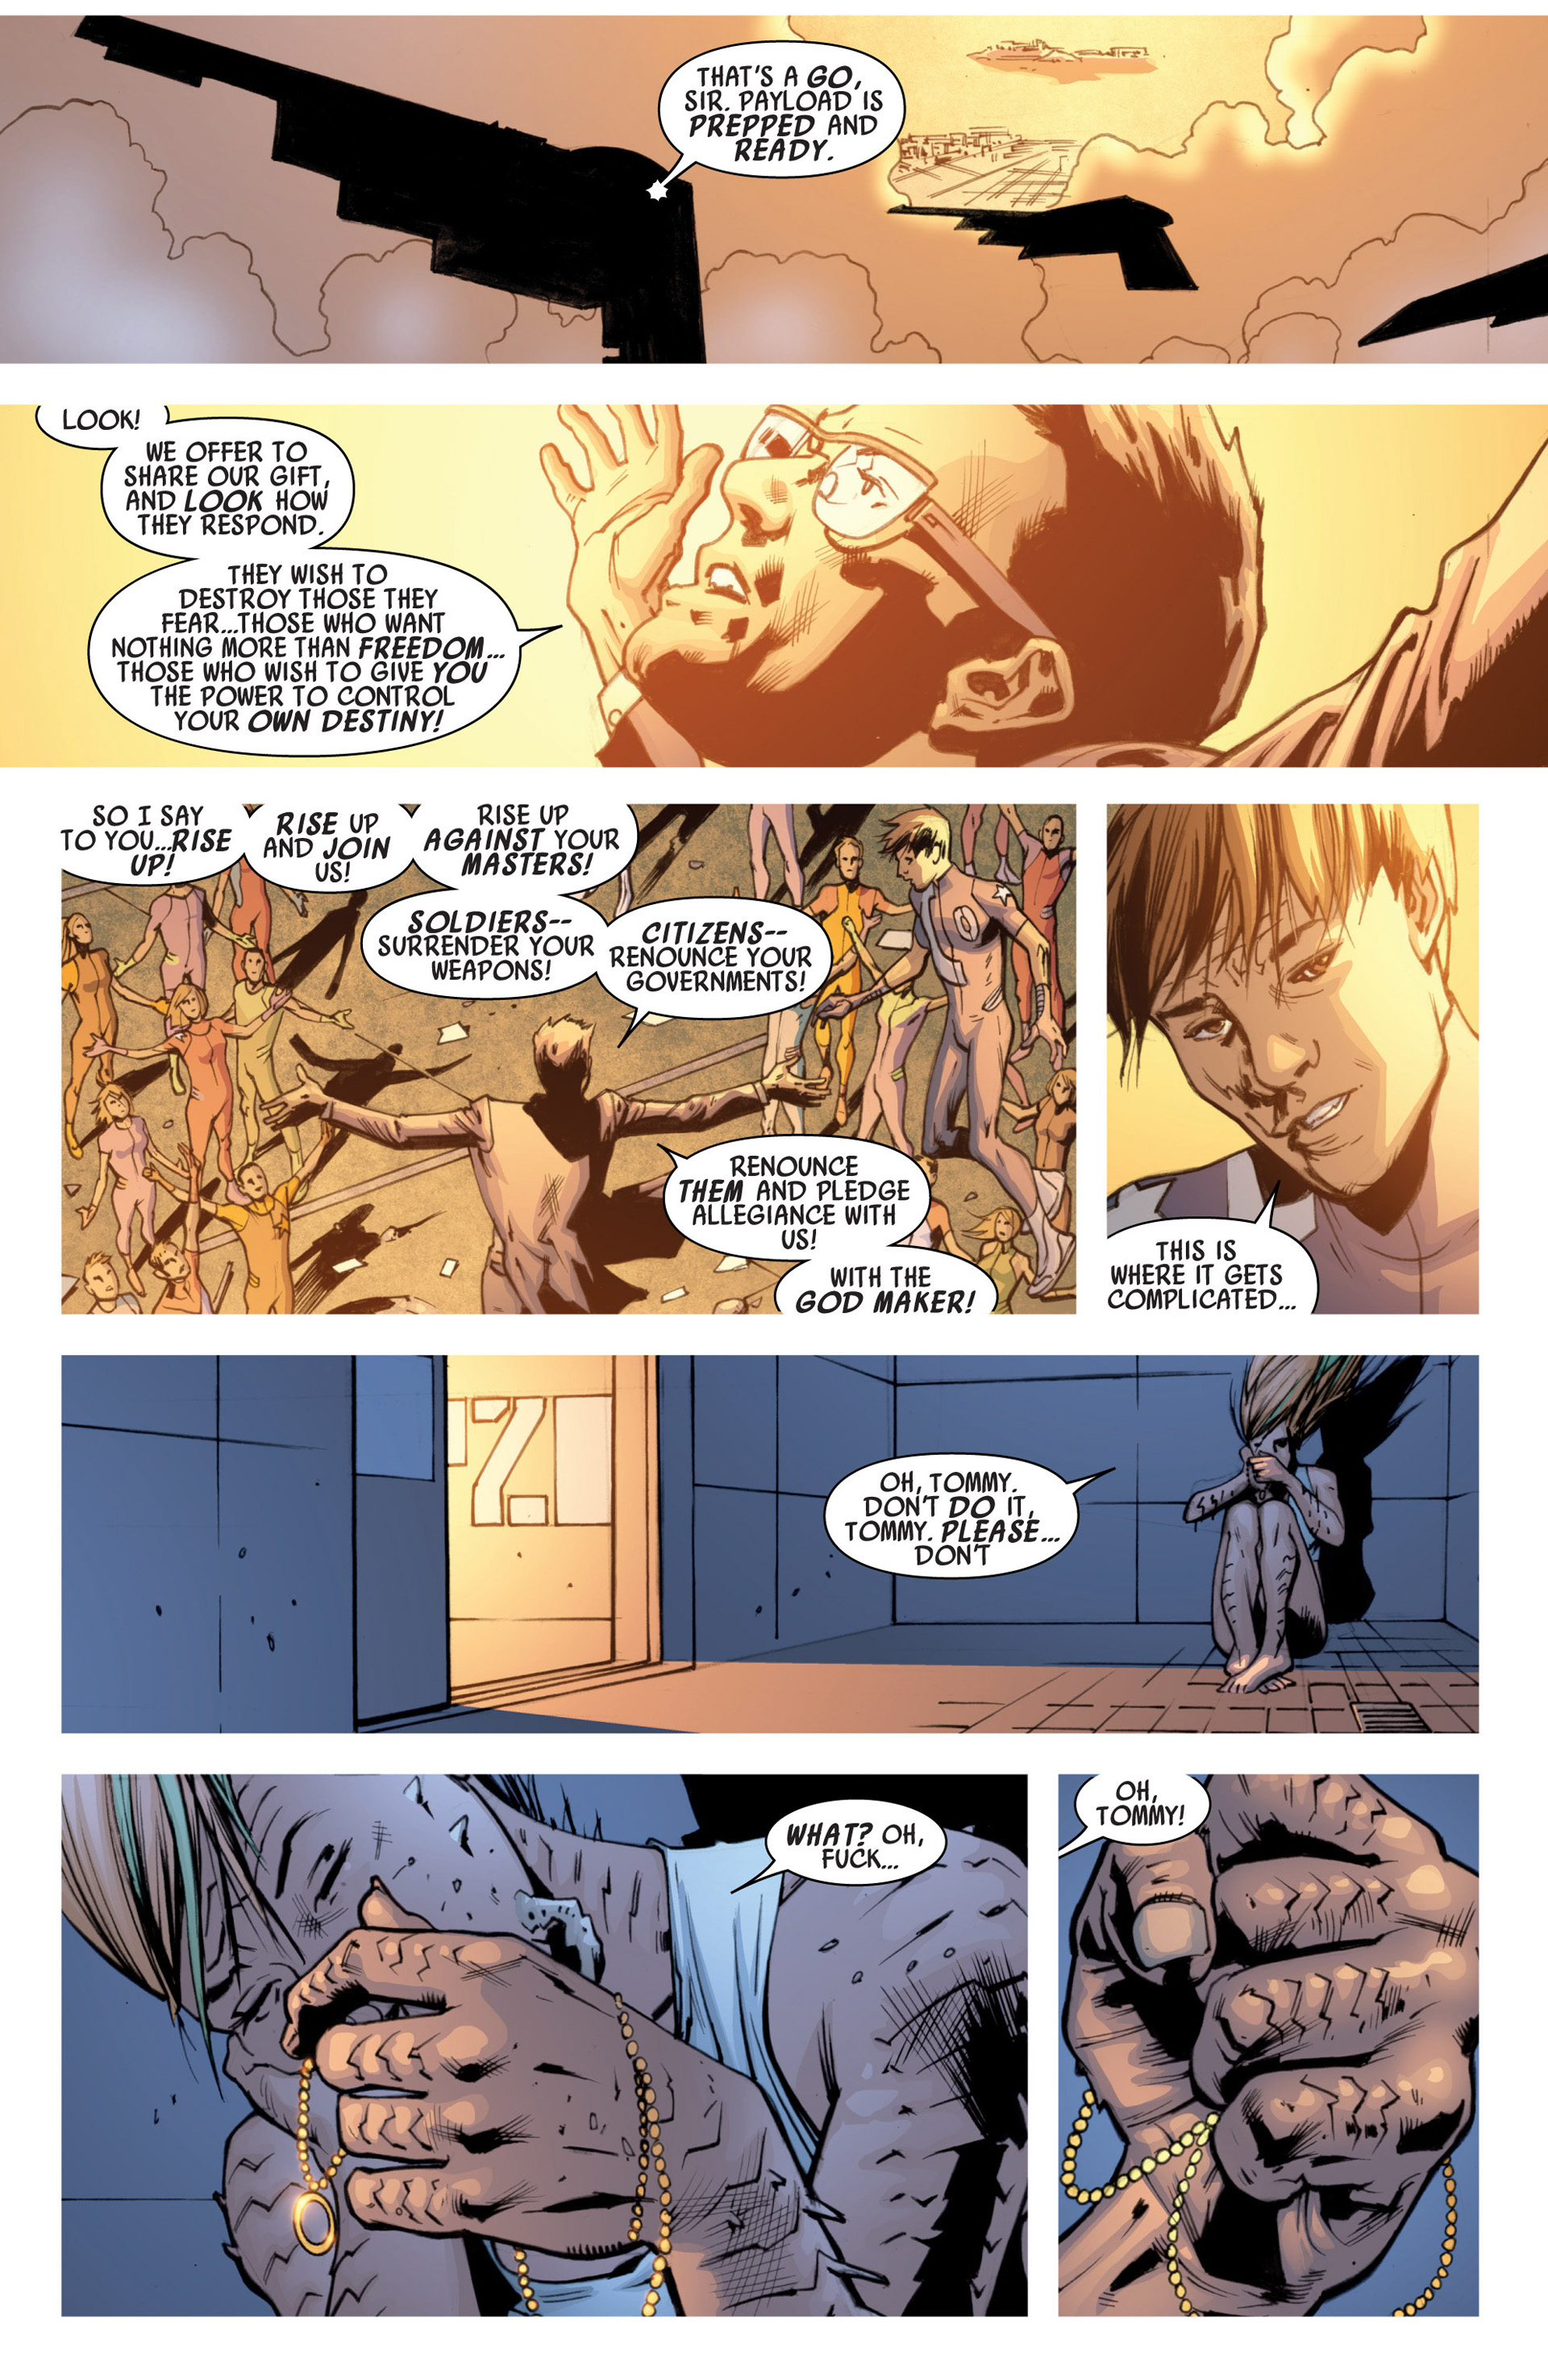 Read online America's Got Powers comic -  Issue #7 - 9